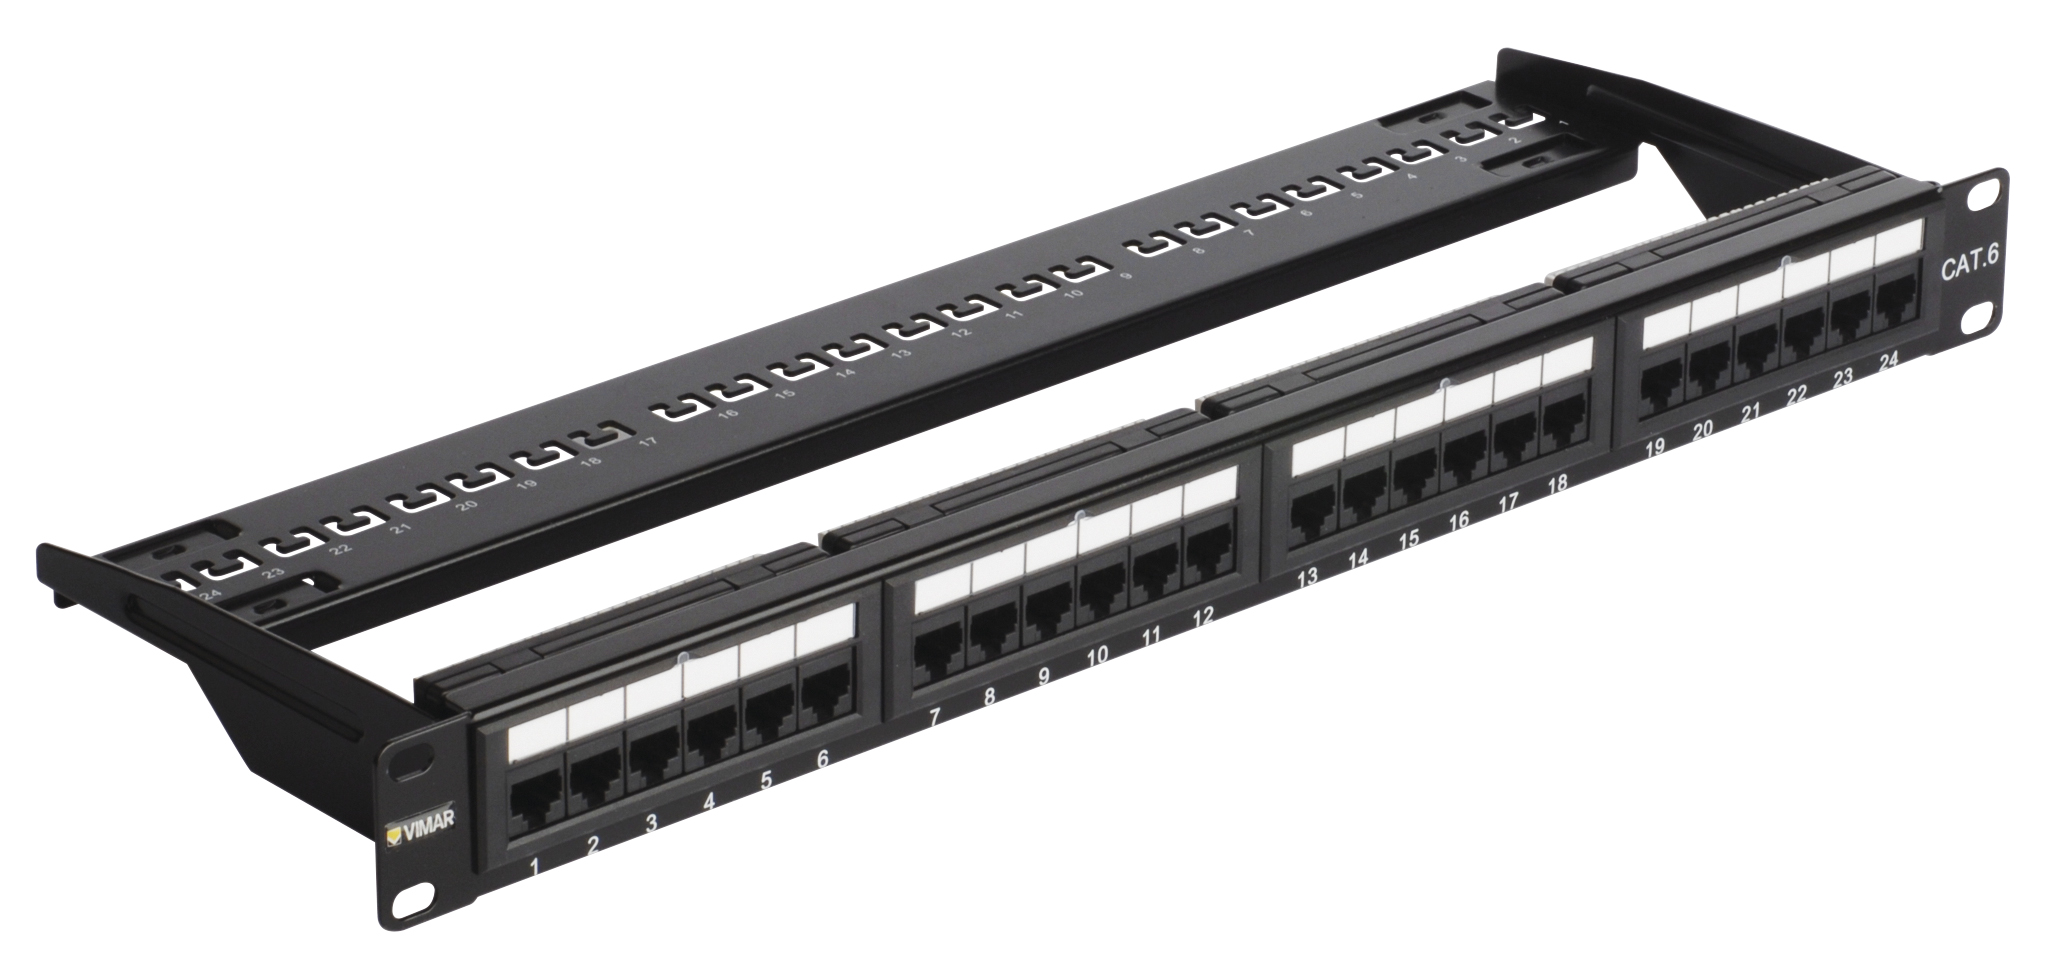 Patch panels: Patch panel - 24 RJ45 Cat6 UTP conn.1u - 03024.6 - Net ...